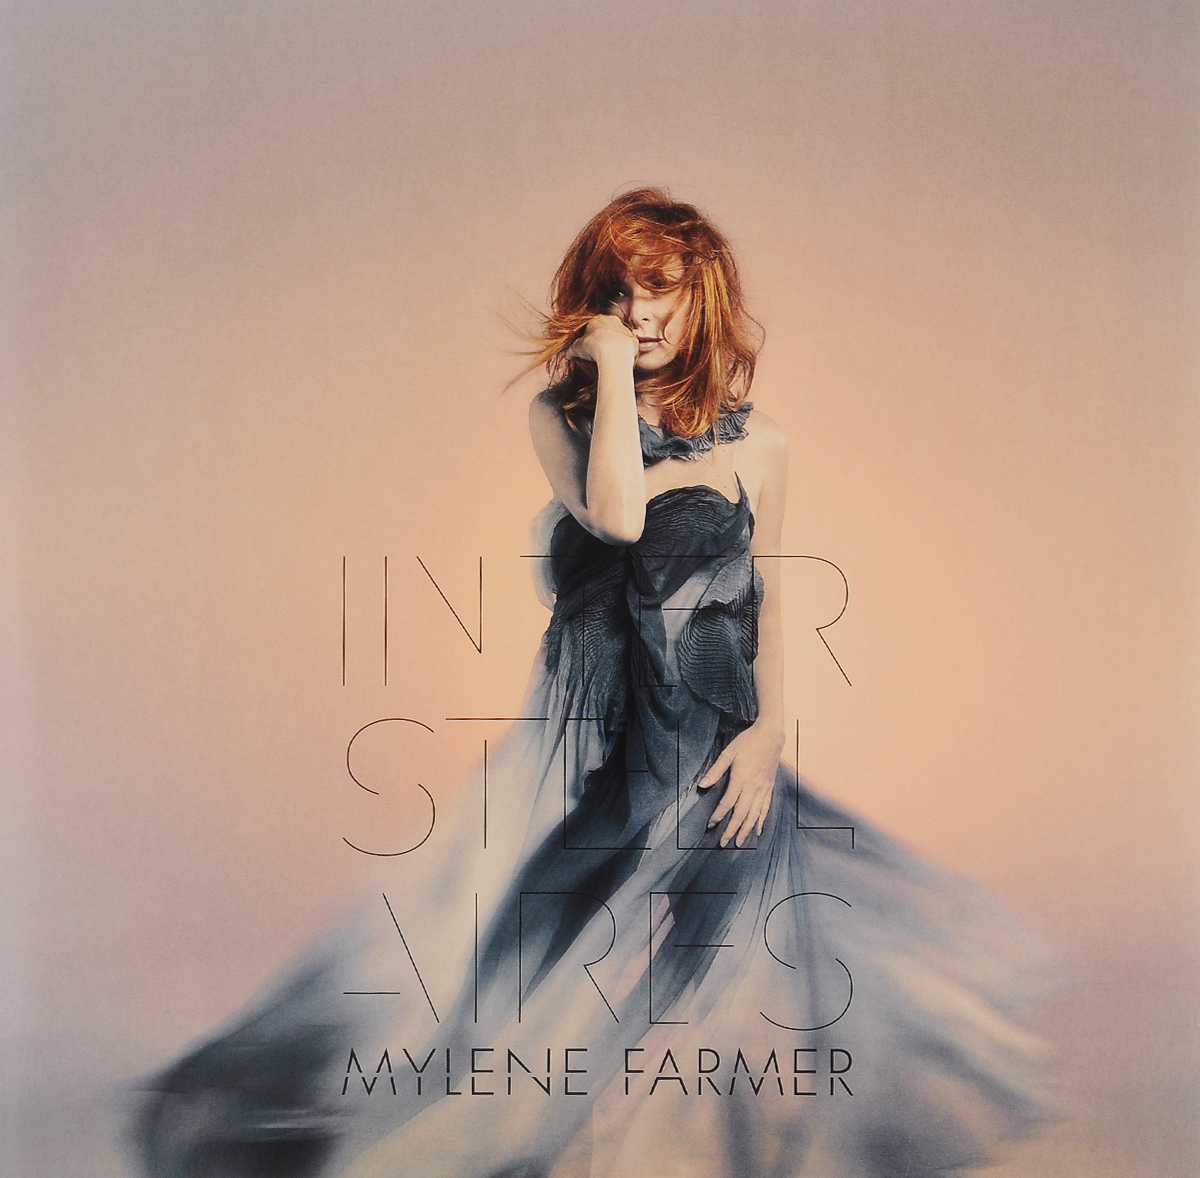 Милен Фармер Mylene Farmer. Interstellaires (2 LP) cd mylene farmer les mots